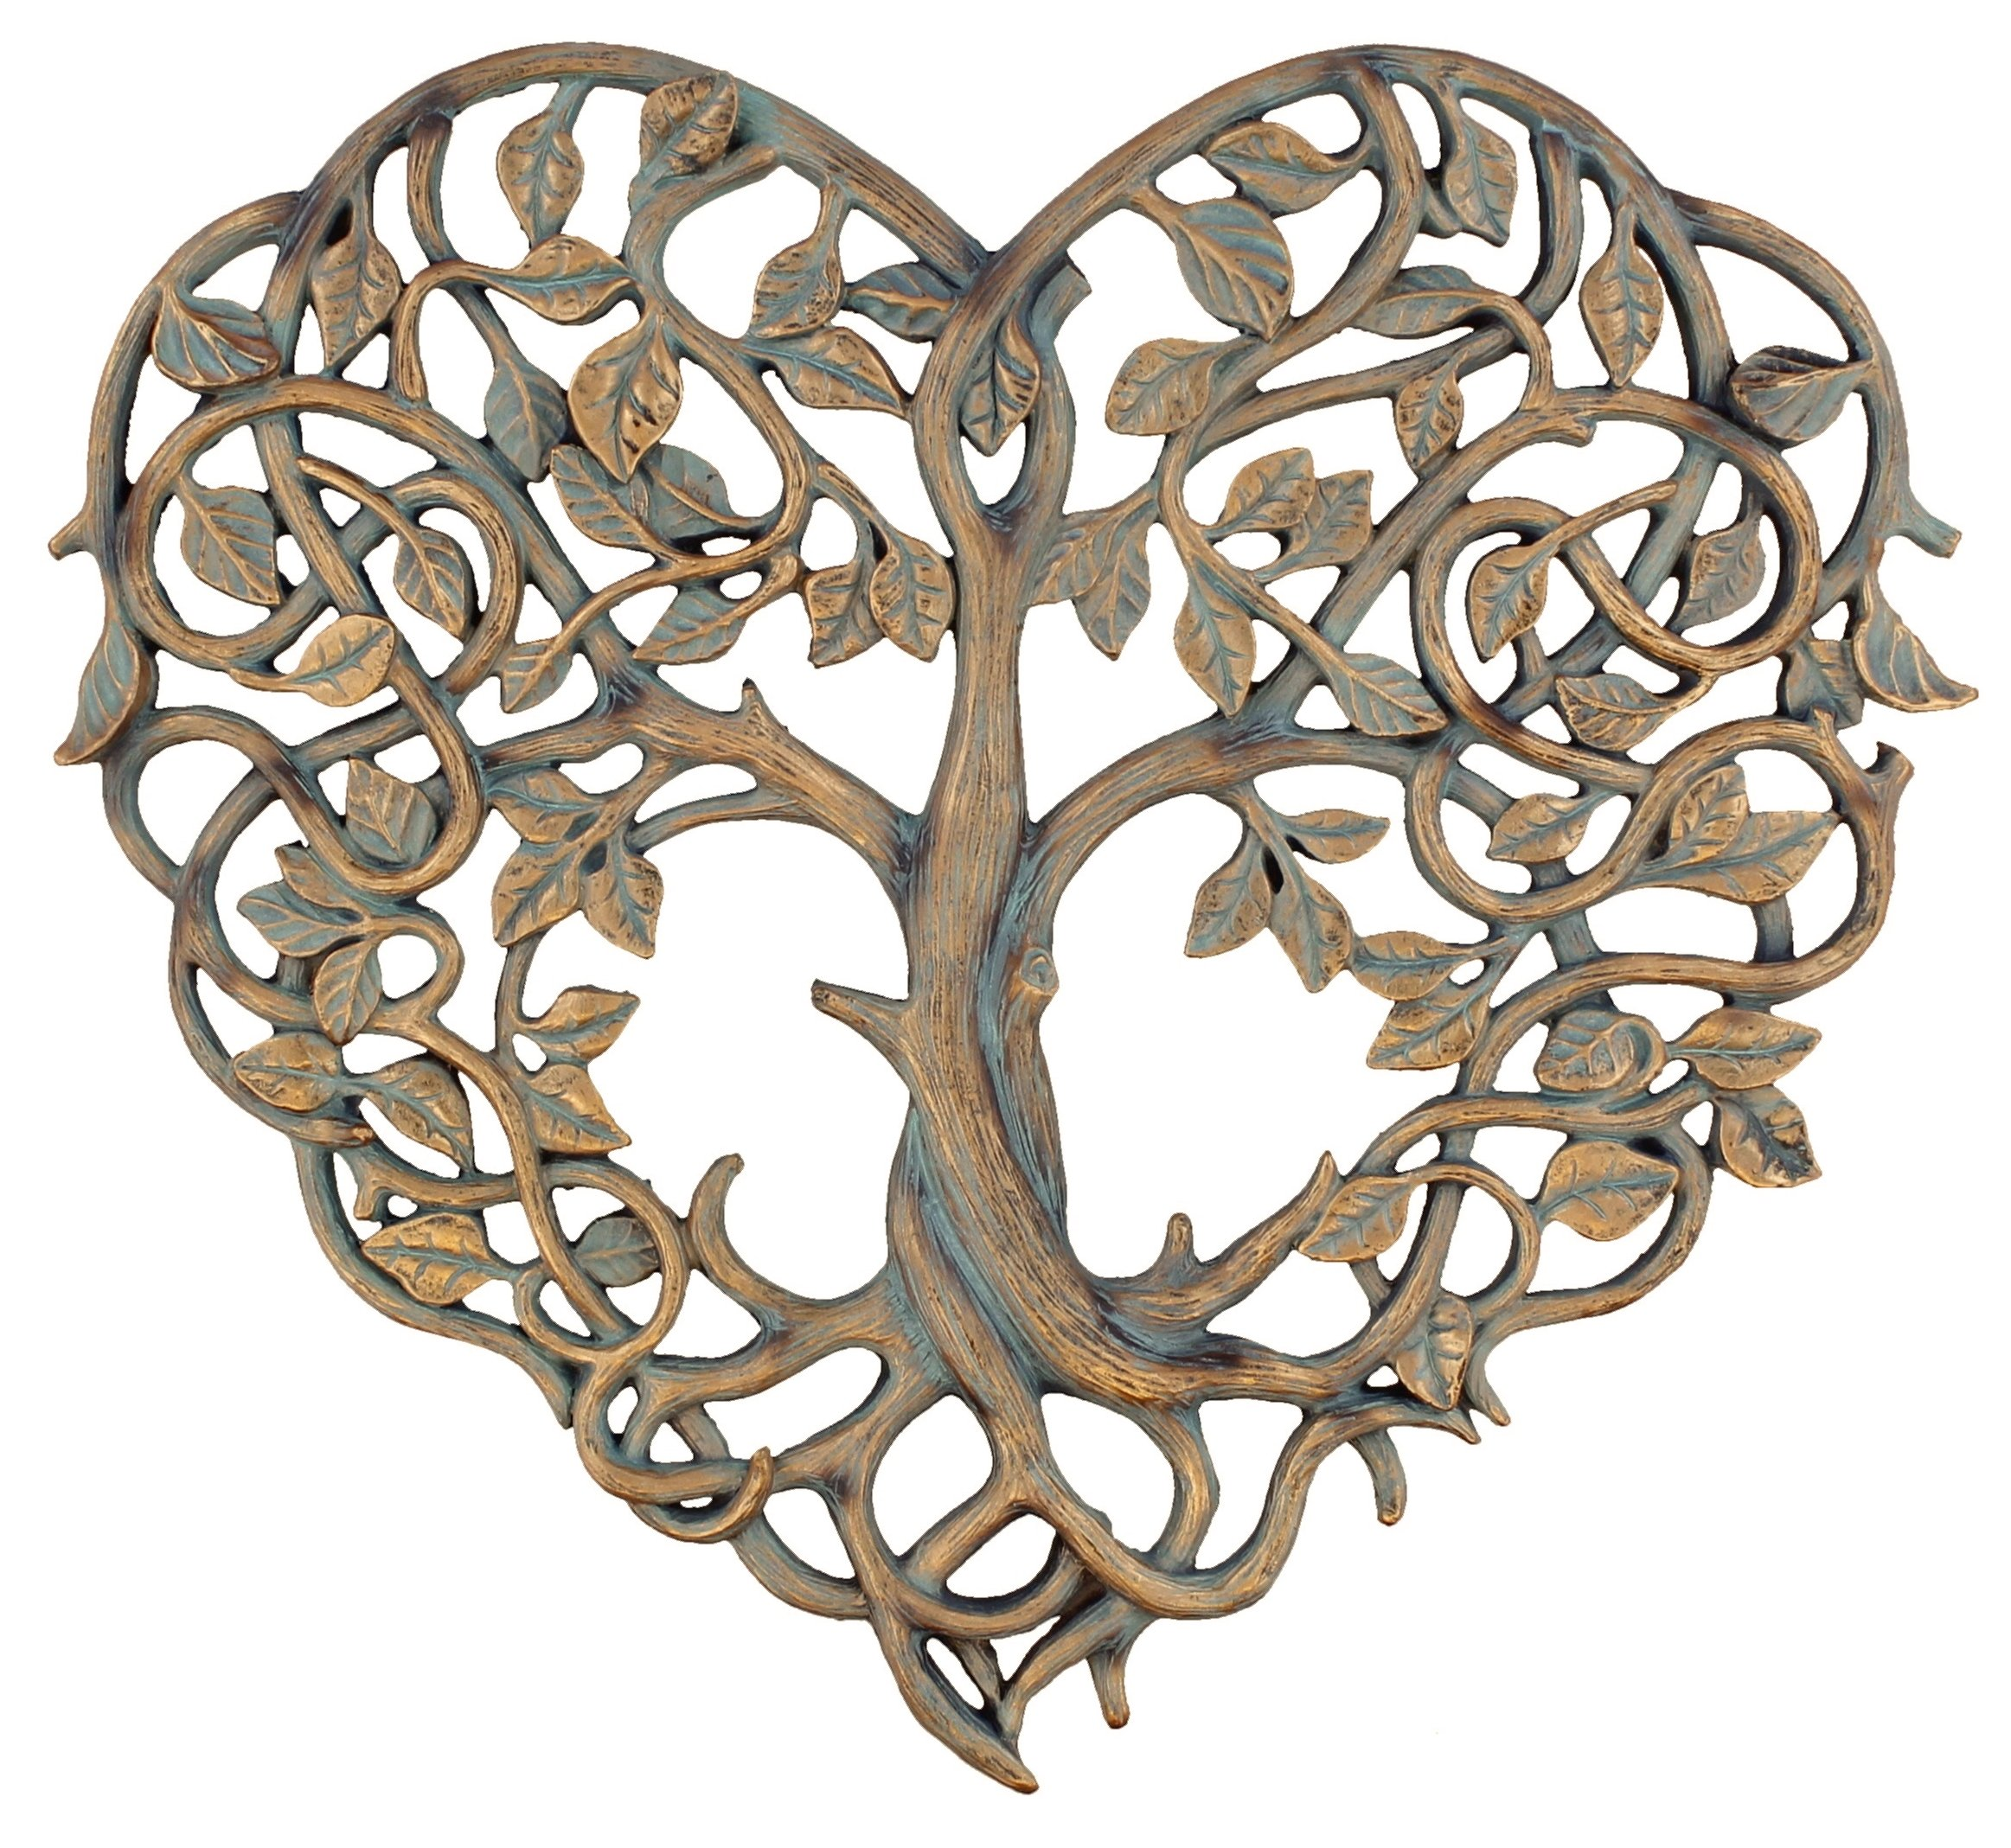 Old River Outdoors Tree of Life/Heart Wall Plaque 12'' Decorative Art Sculpture - I Love You Decor